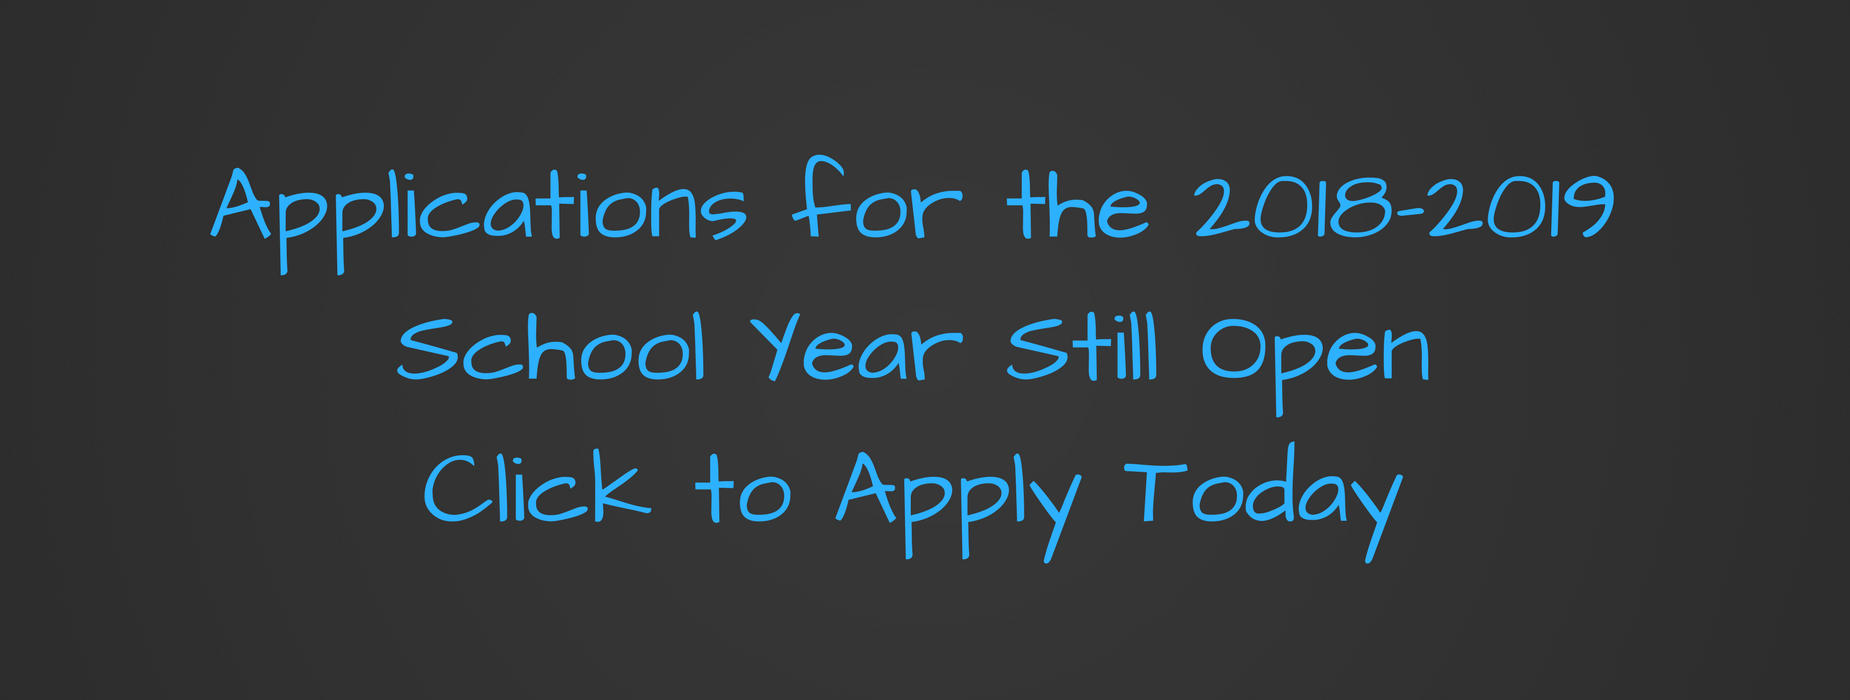 Application for the 2018-2019 school year are still open. Click to apply today.